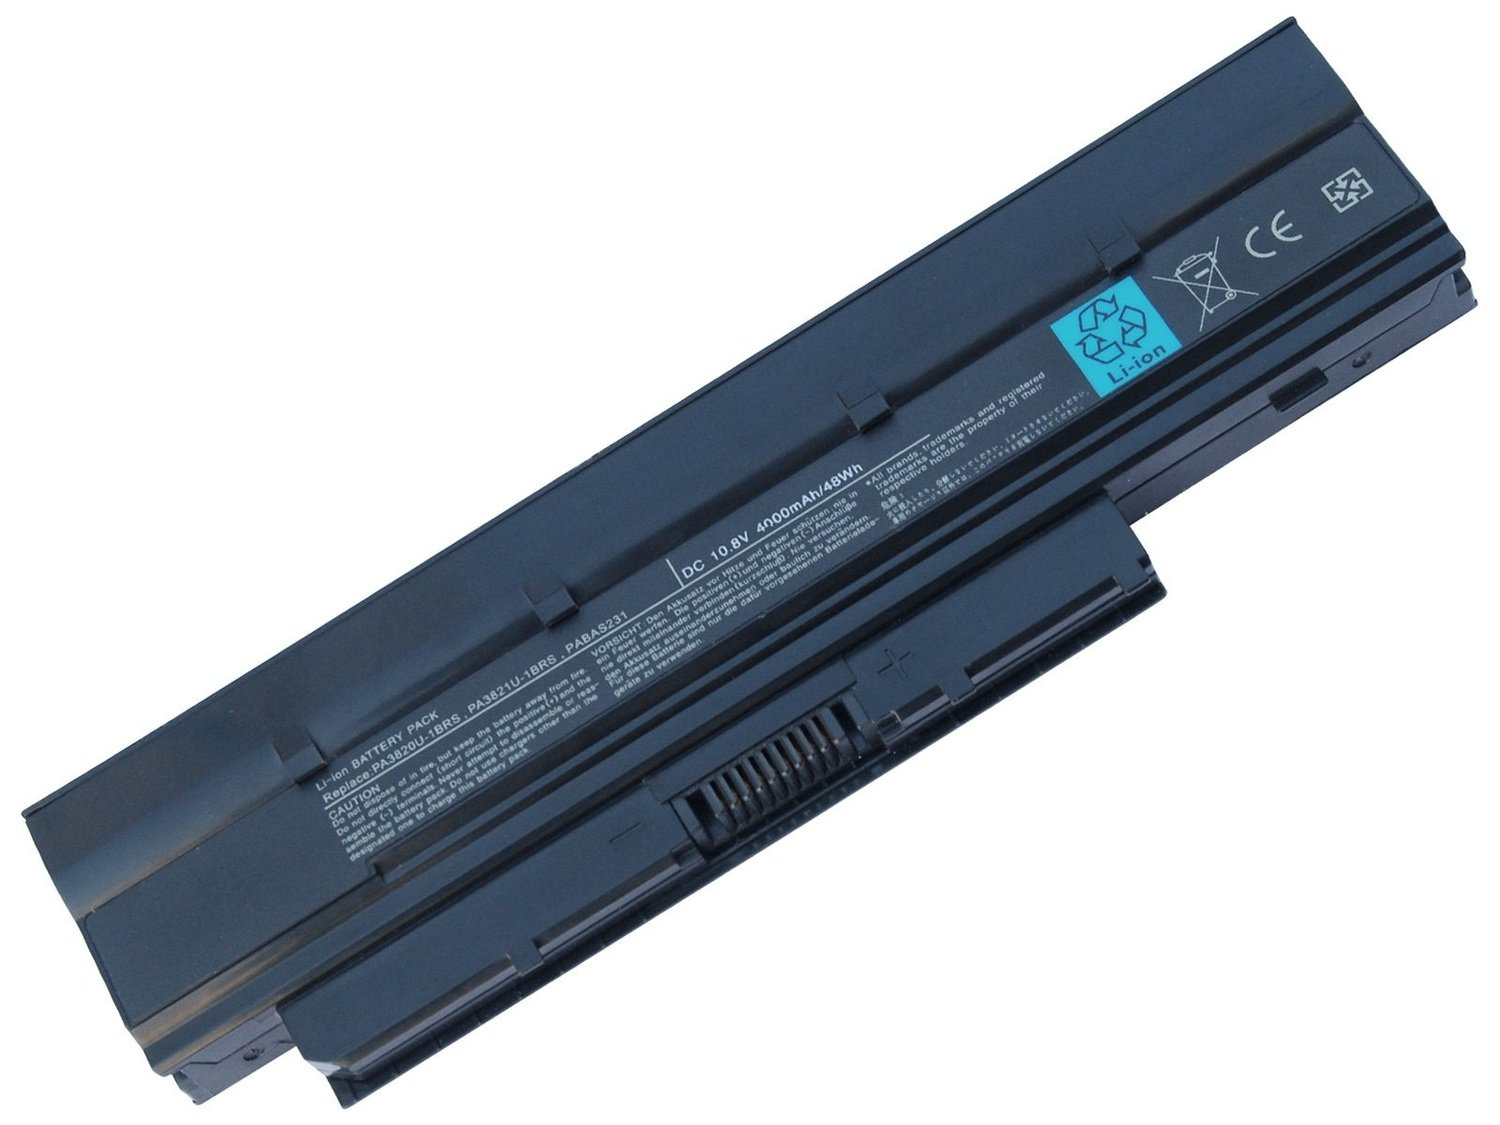 Toshiba mini NB500 NB505 NB525 NB550 Toshiba satellite T210 T215 T230 T235 series Compatible laptop battery